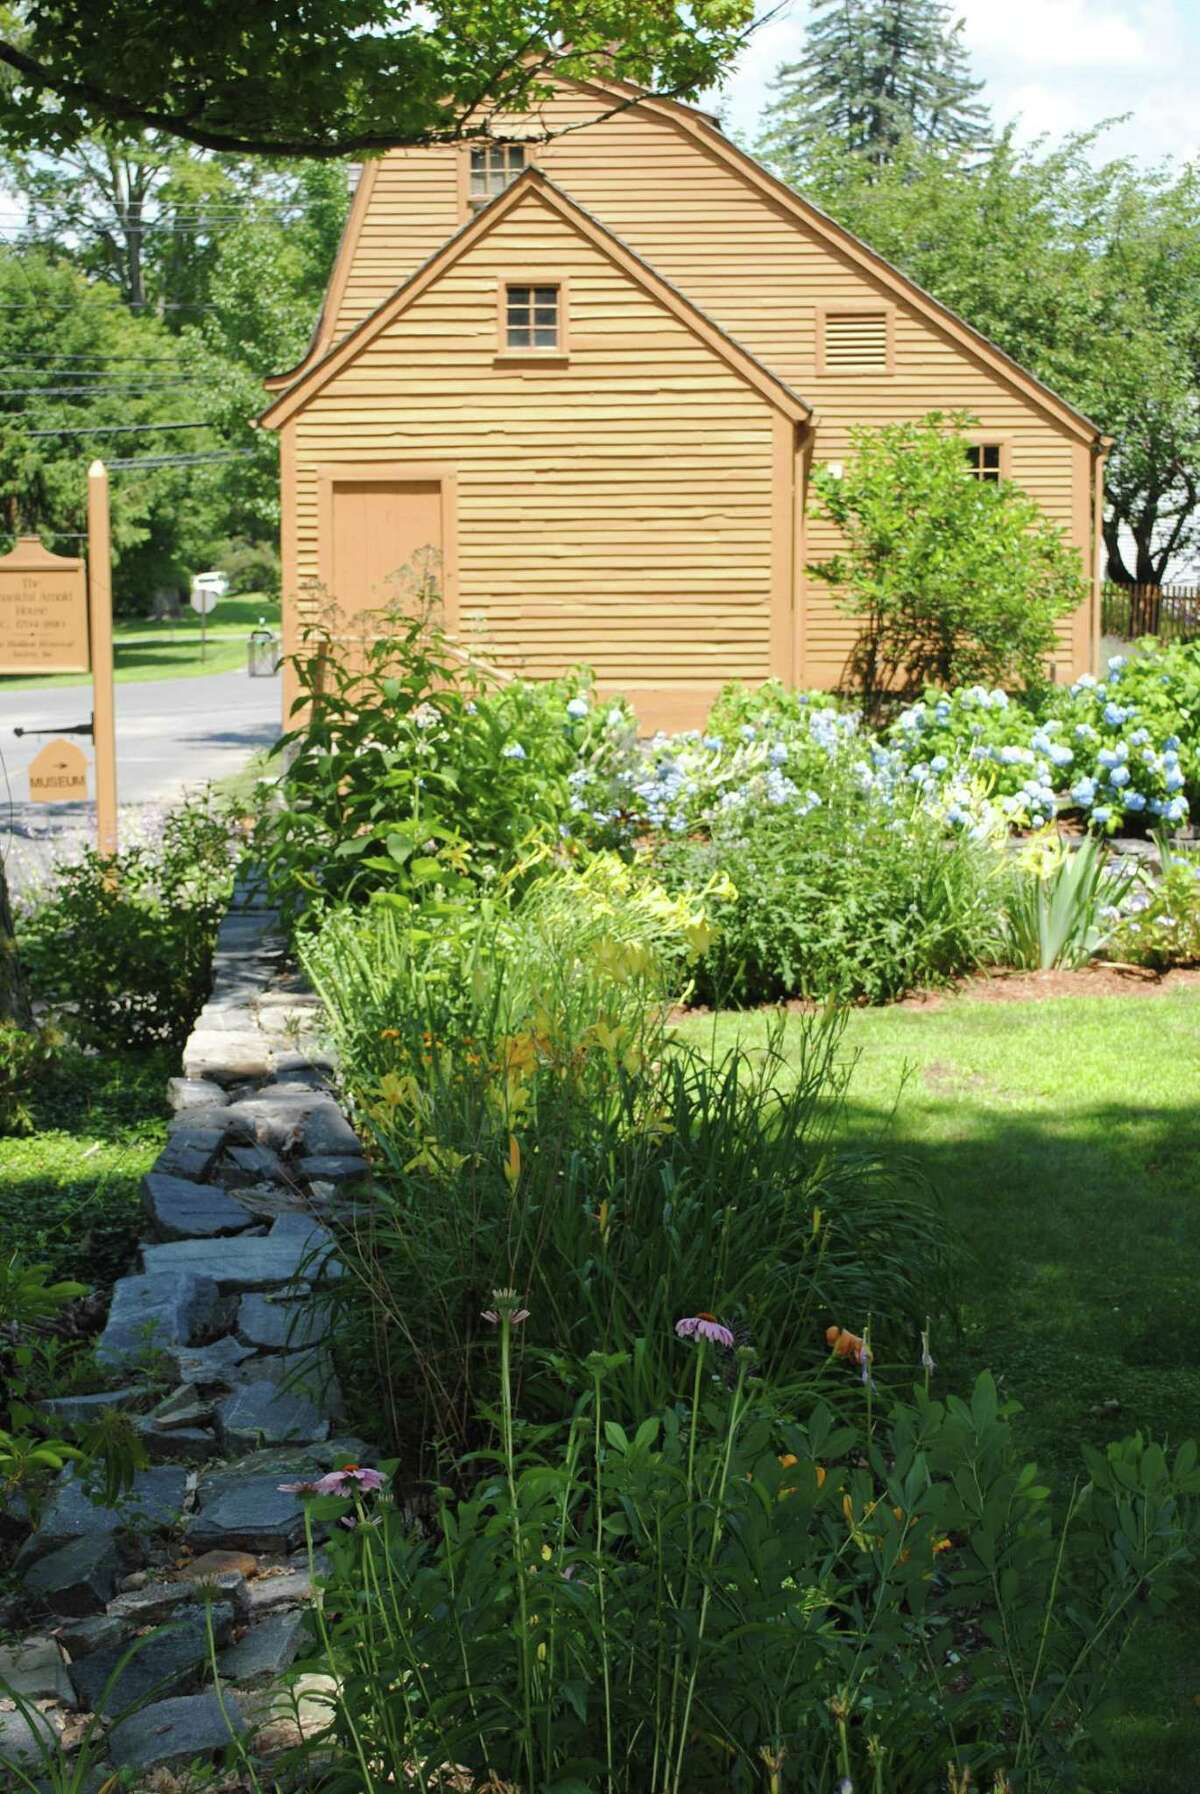 The Thankful Arnold House in Haddam is one of many properties taking part in Open House Day on Saturday, June 9.